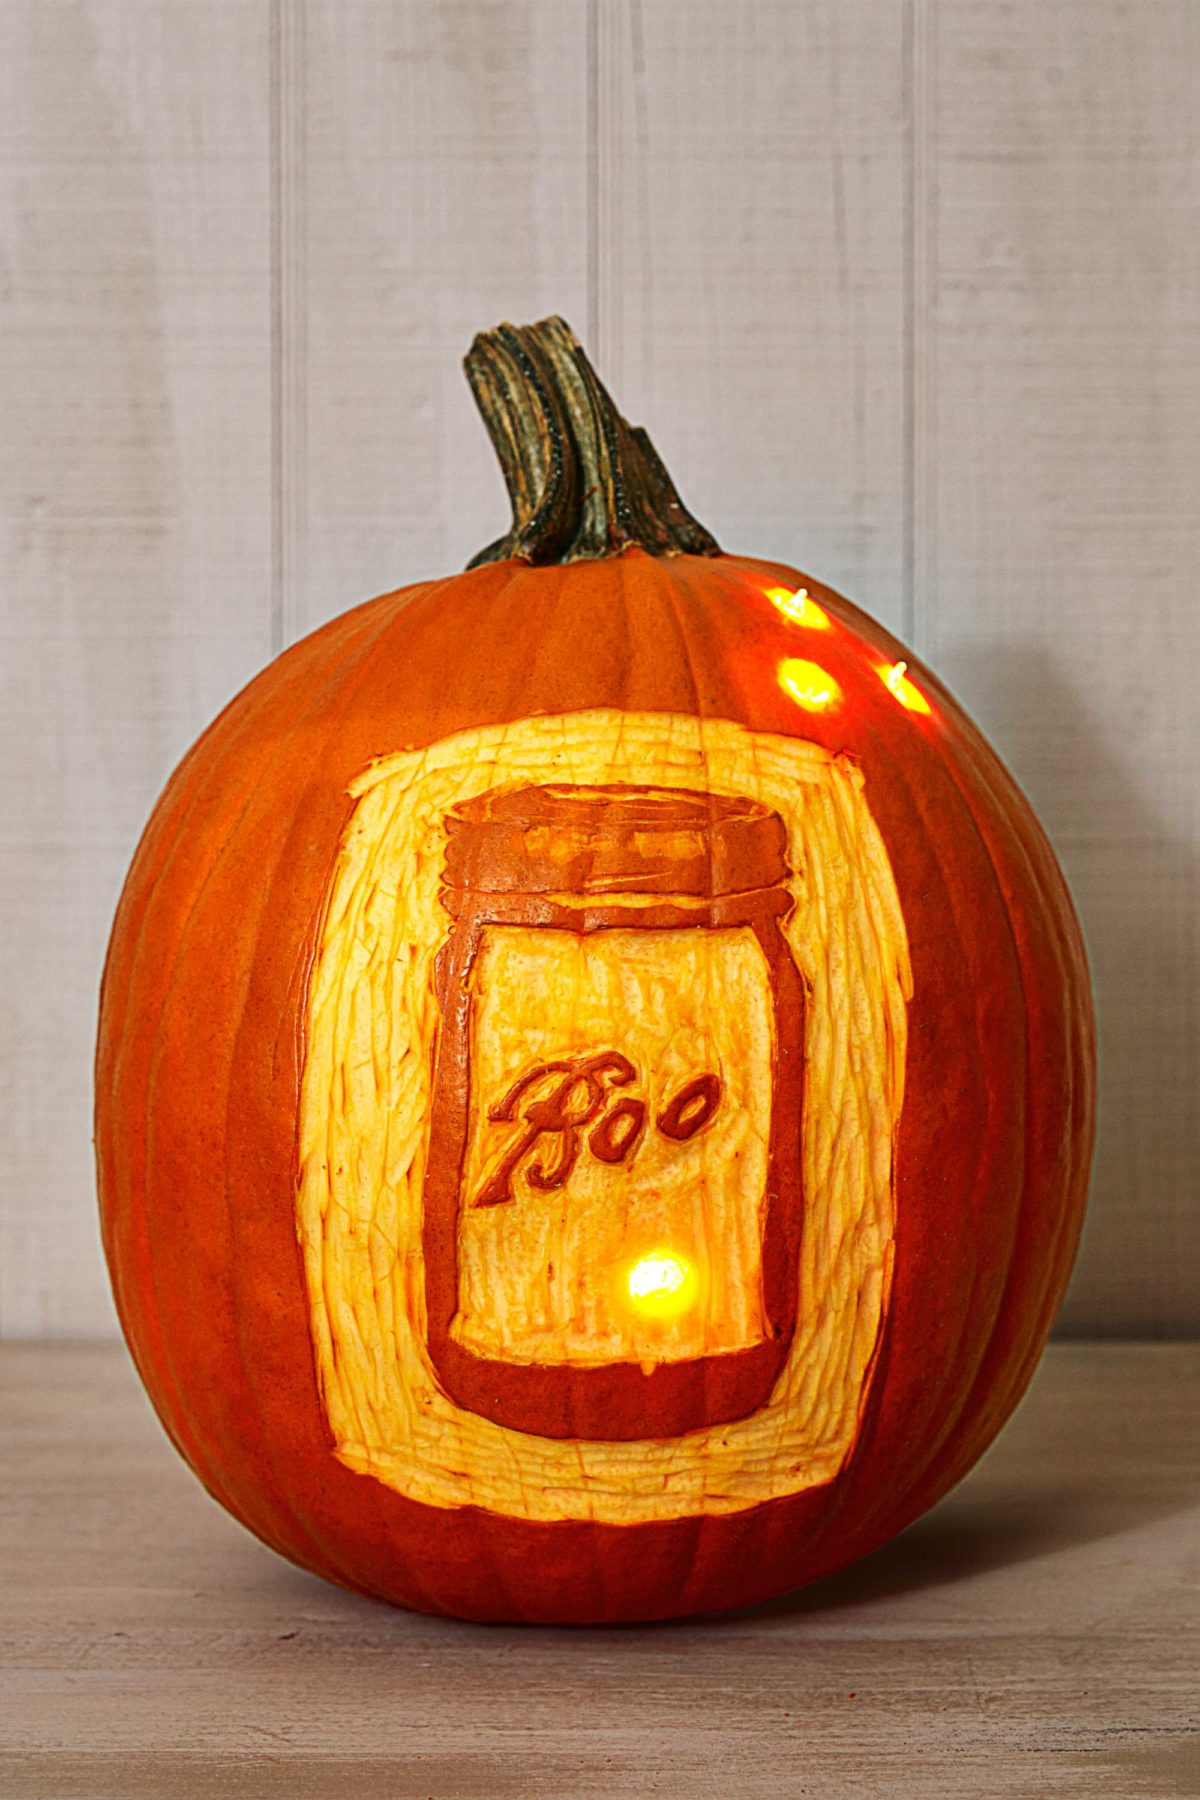 Top 5 Intricate Jack O Lantern Patterns That Are Actually